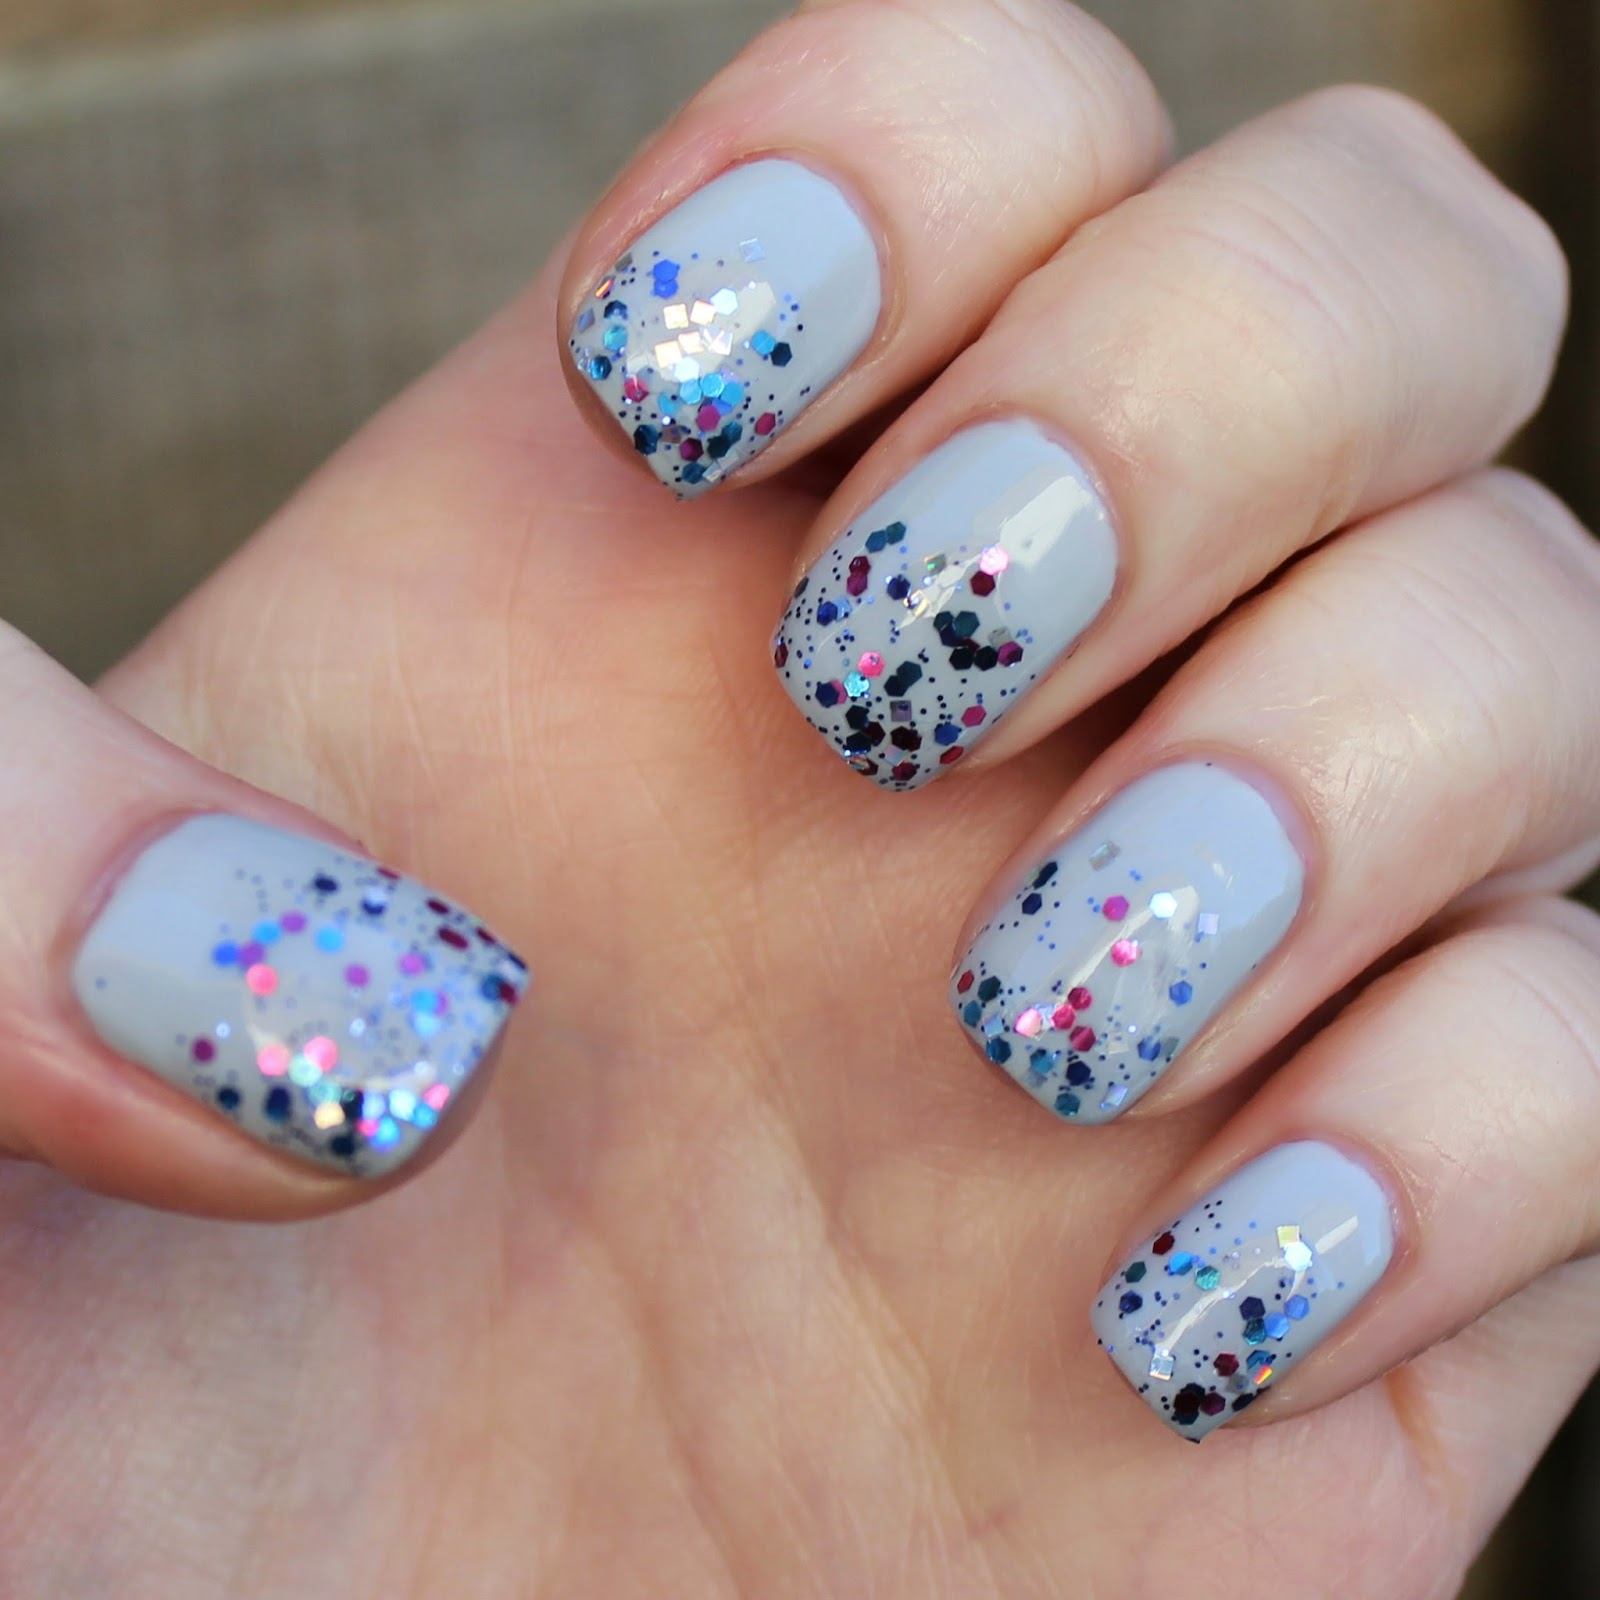 Dahlia Nails: Bedazzled